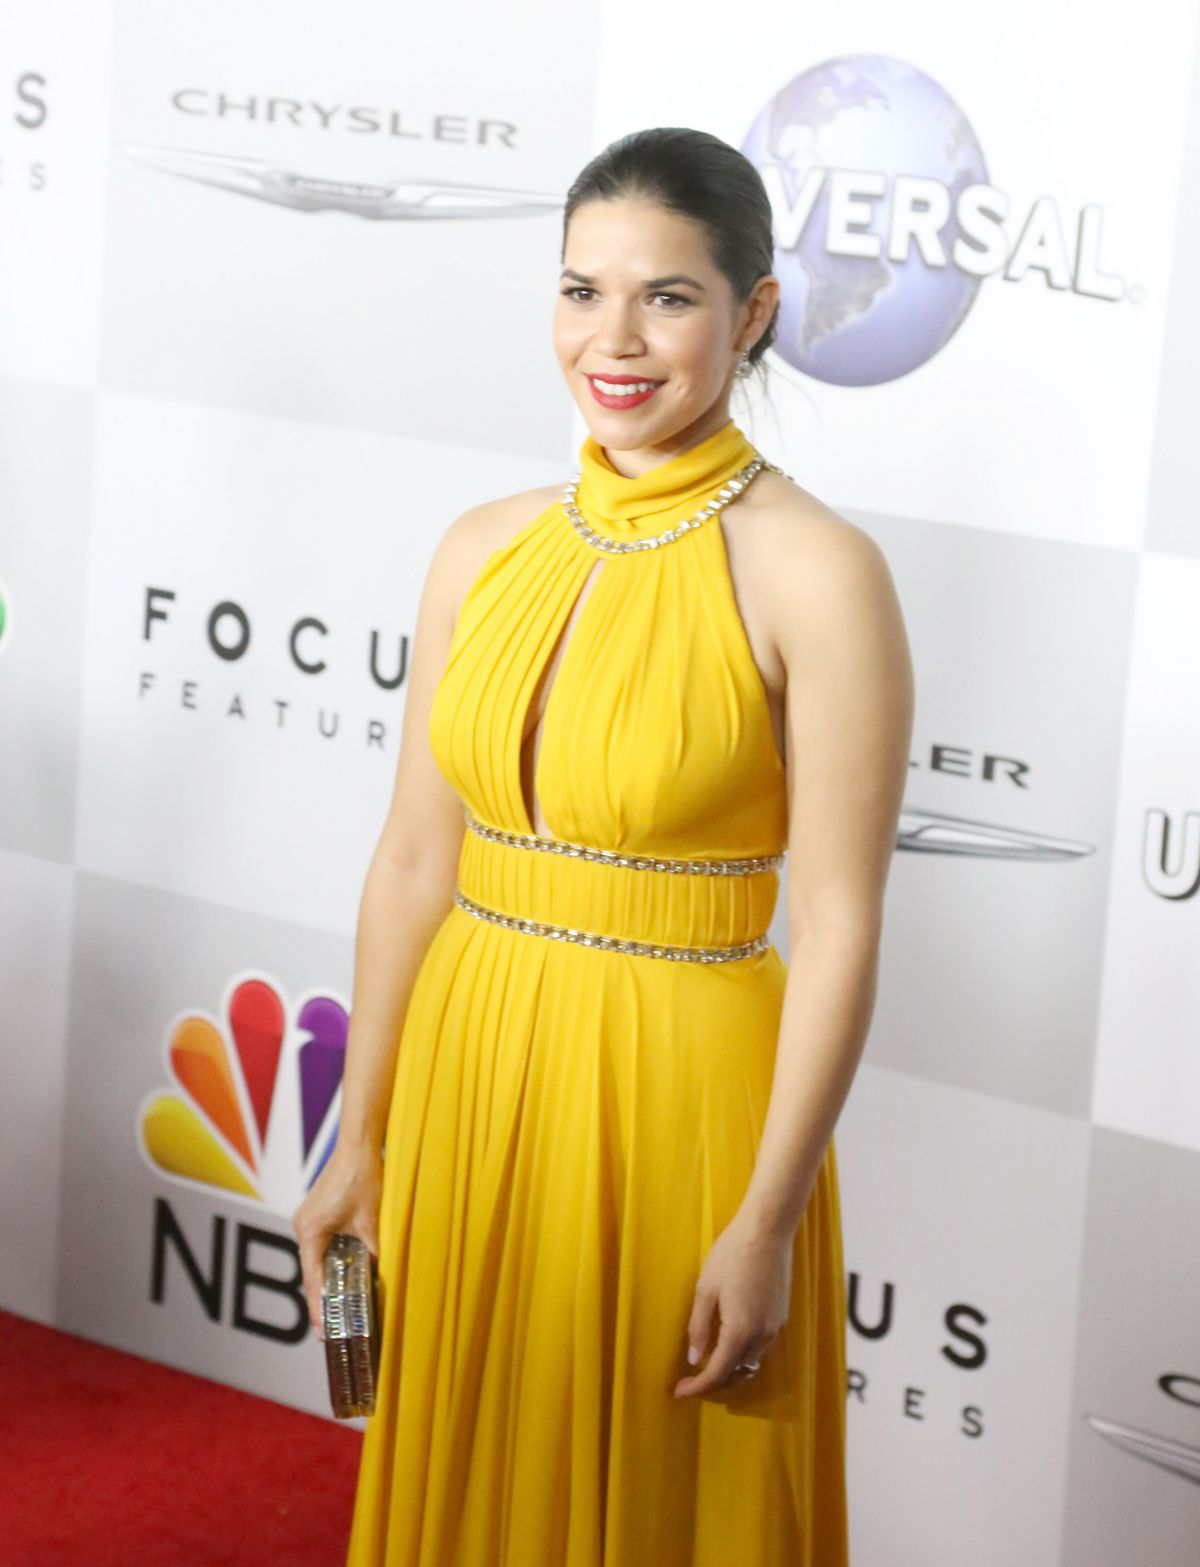 AMERICA FERRERA at NBC/Universal Golden Globes After Party in Beverly Hills 01/10/2016